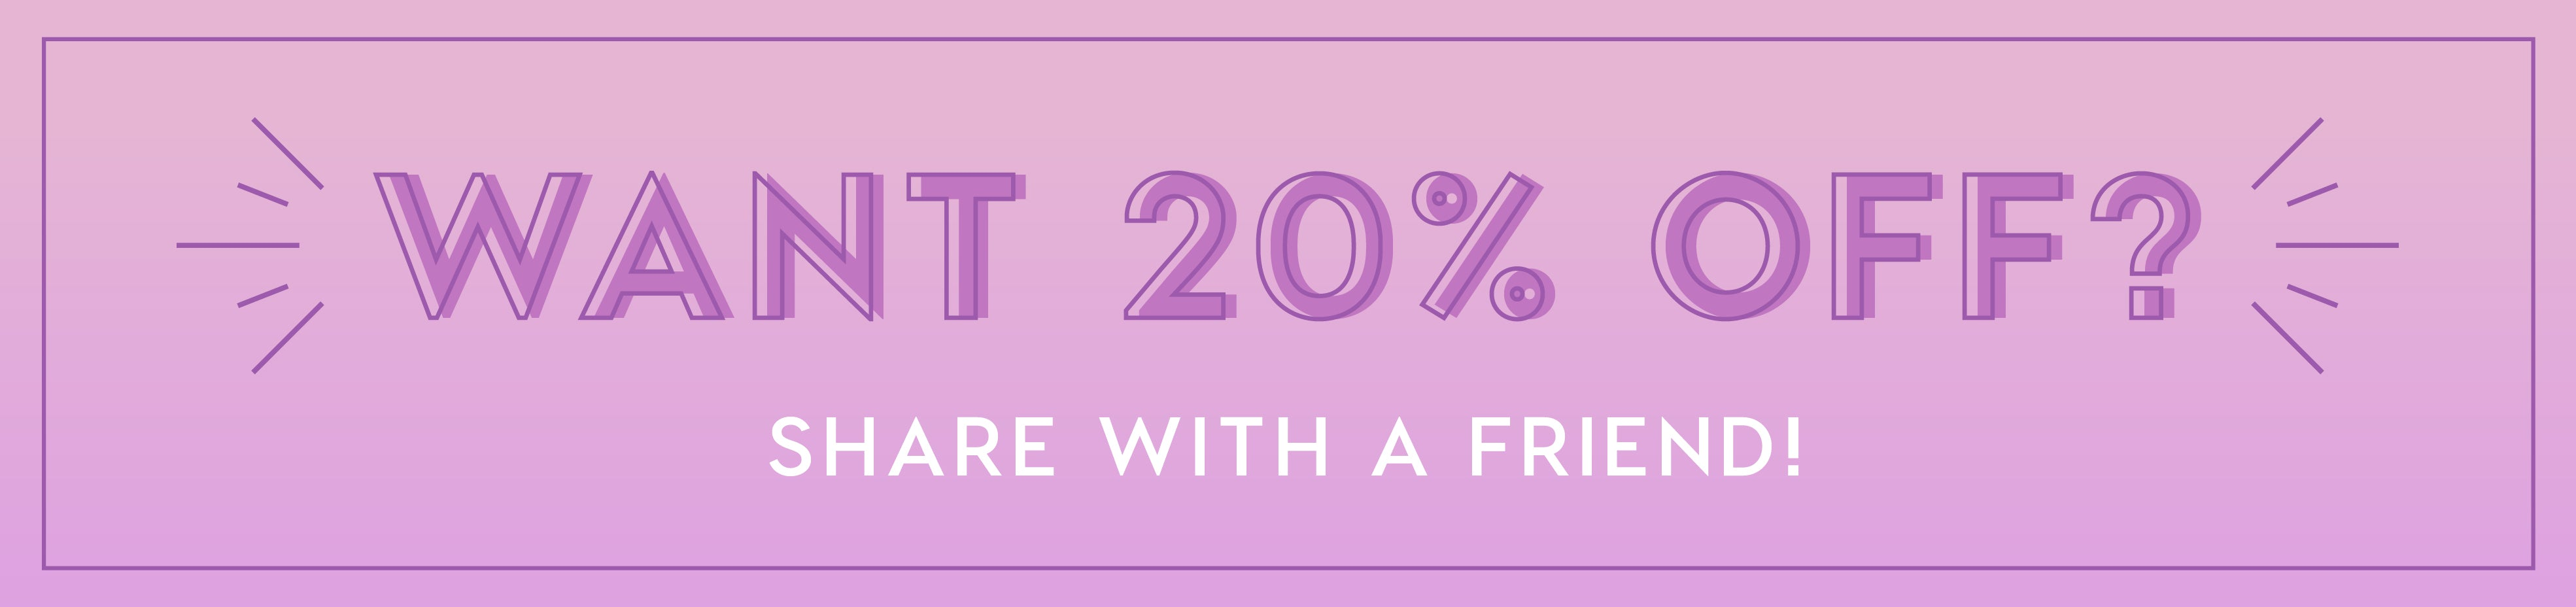 Want 20% off? Share with a friend!